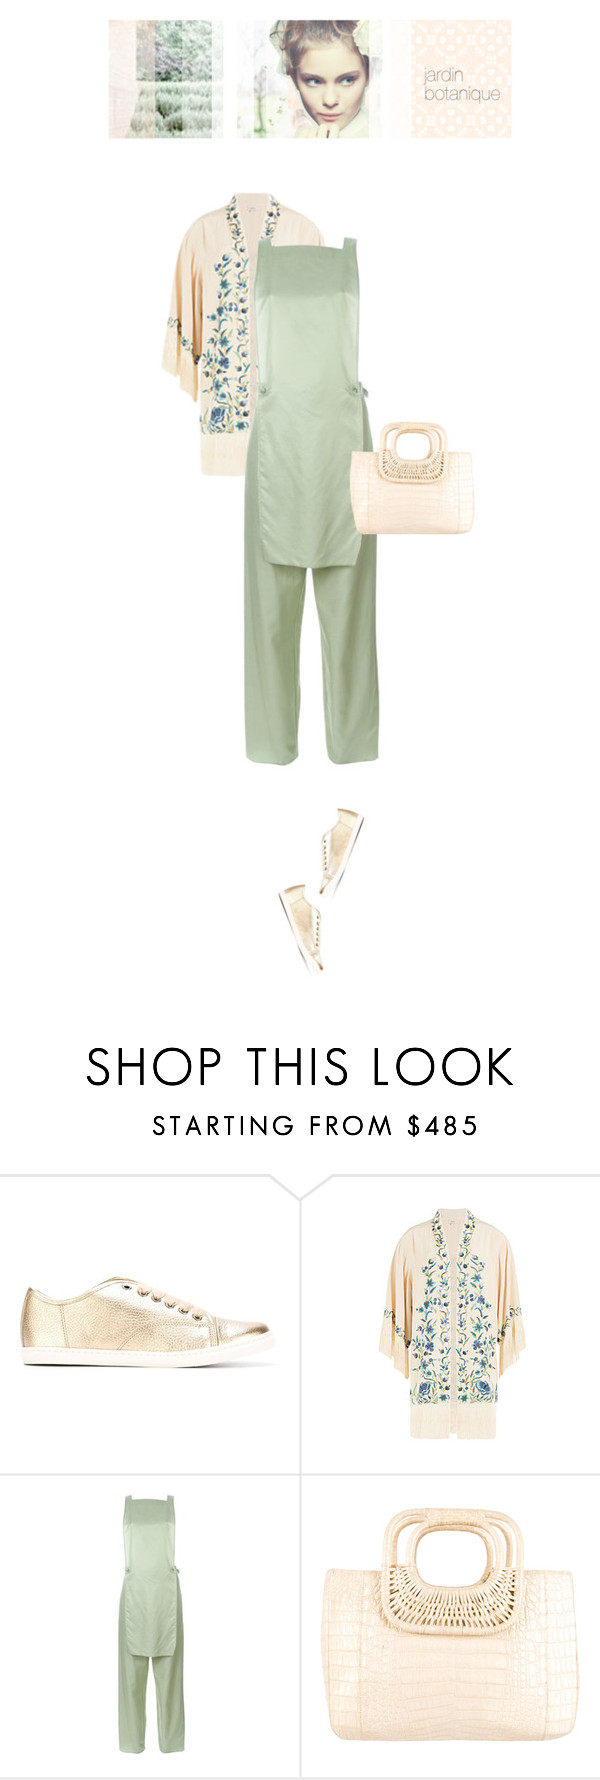 """""""jardin botanique"""" by pinkchampagneme ❤ liked on Polyvore featuring Lanvin, Talitha, MM6 Maison Margiela and Nancy Gonzalez"""